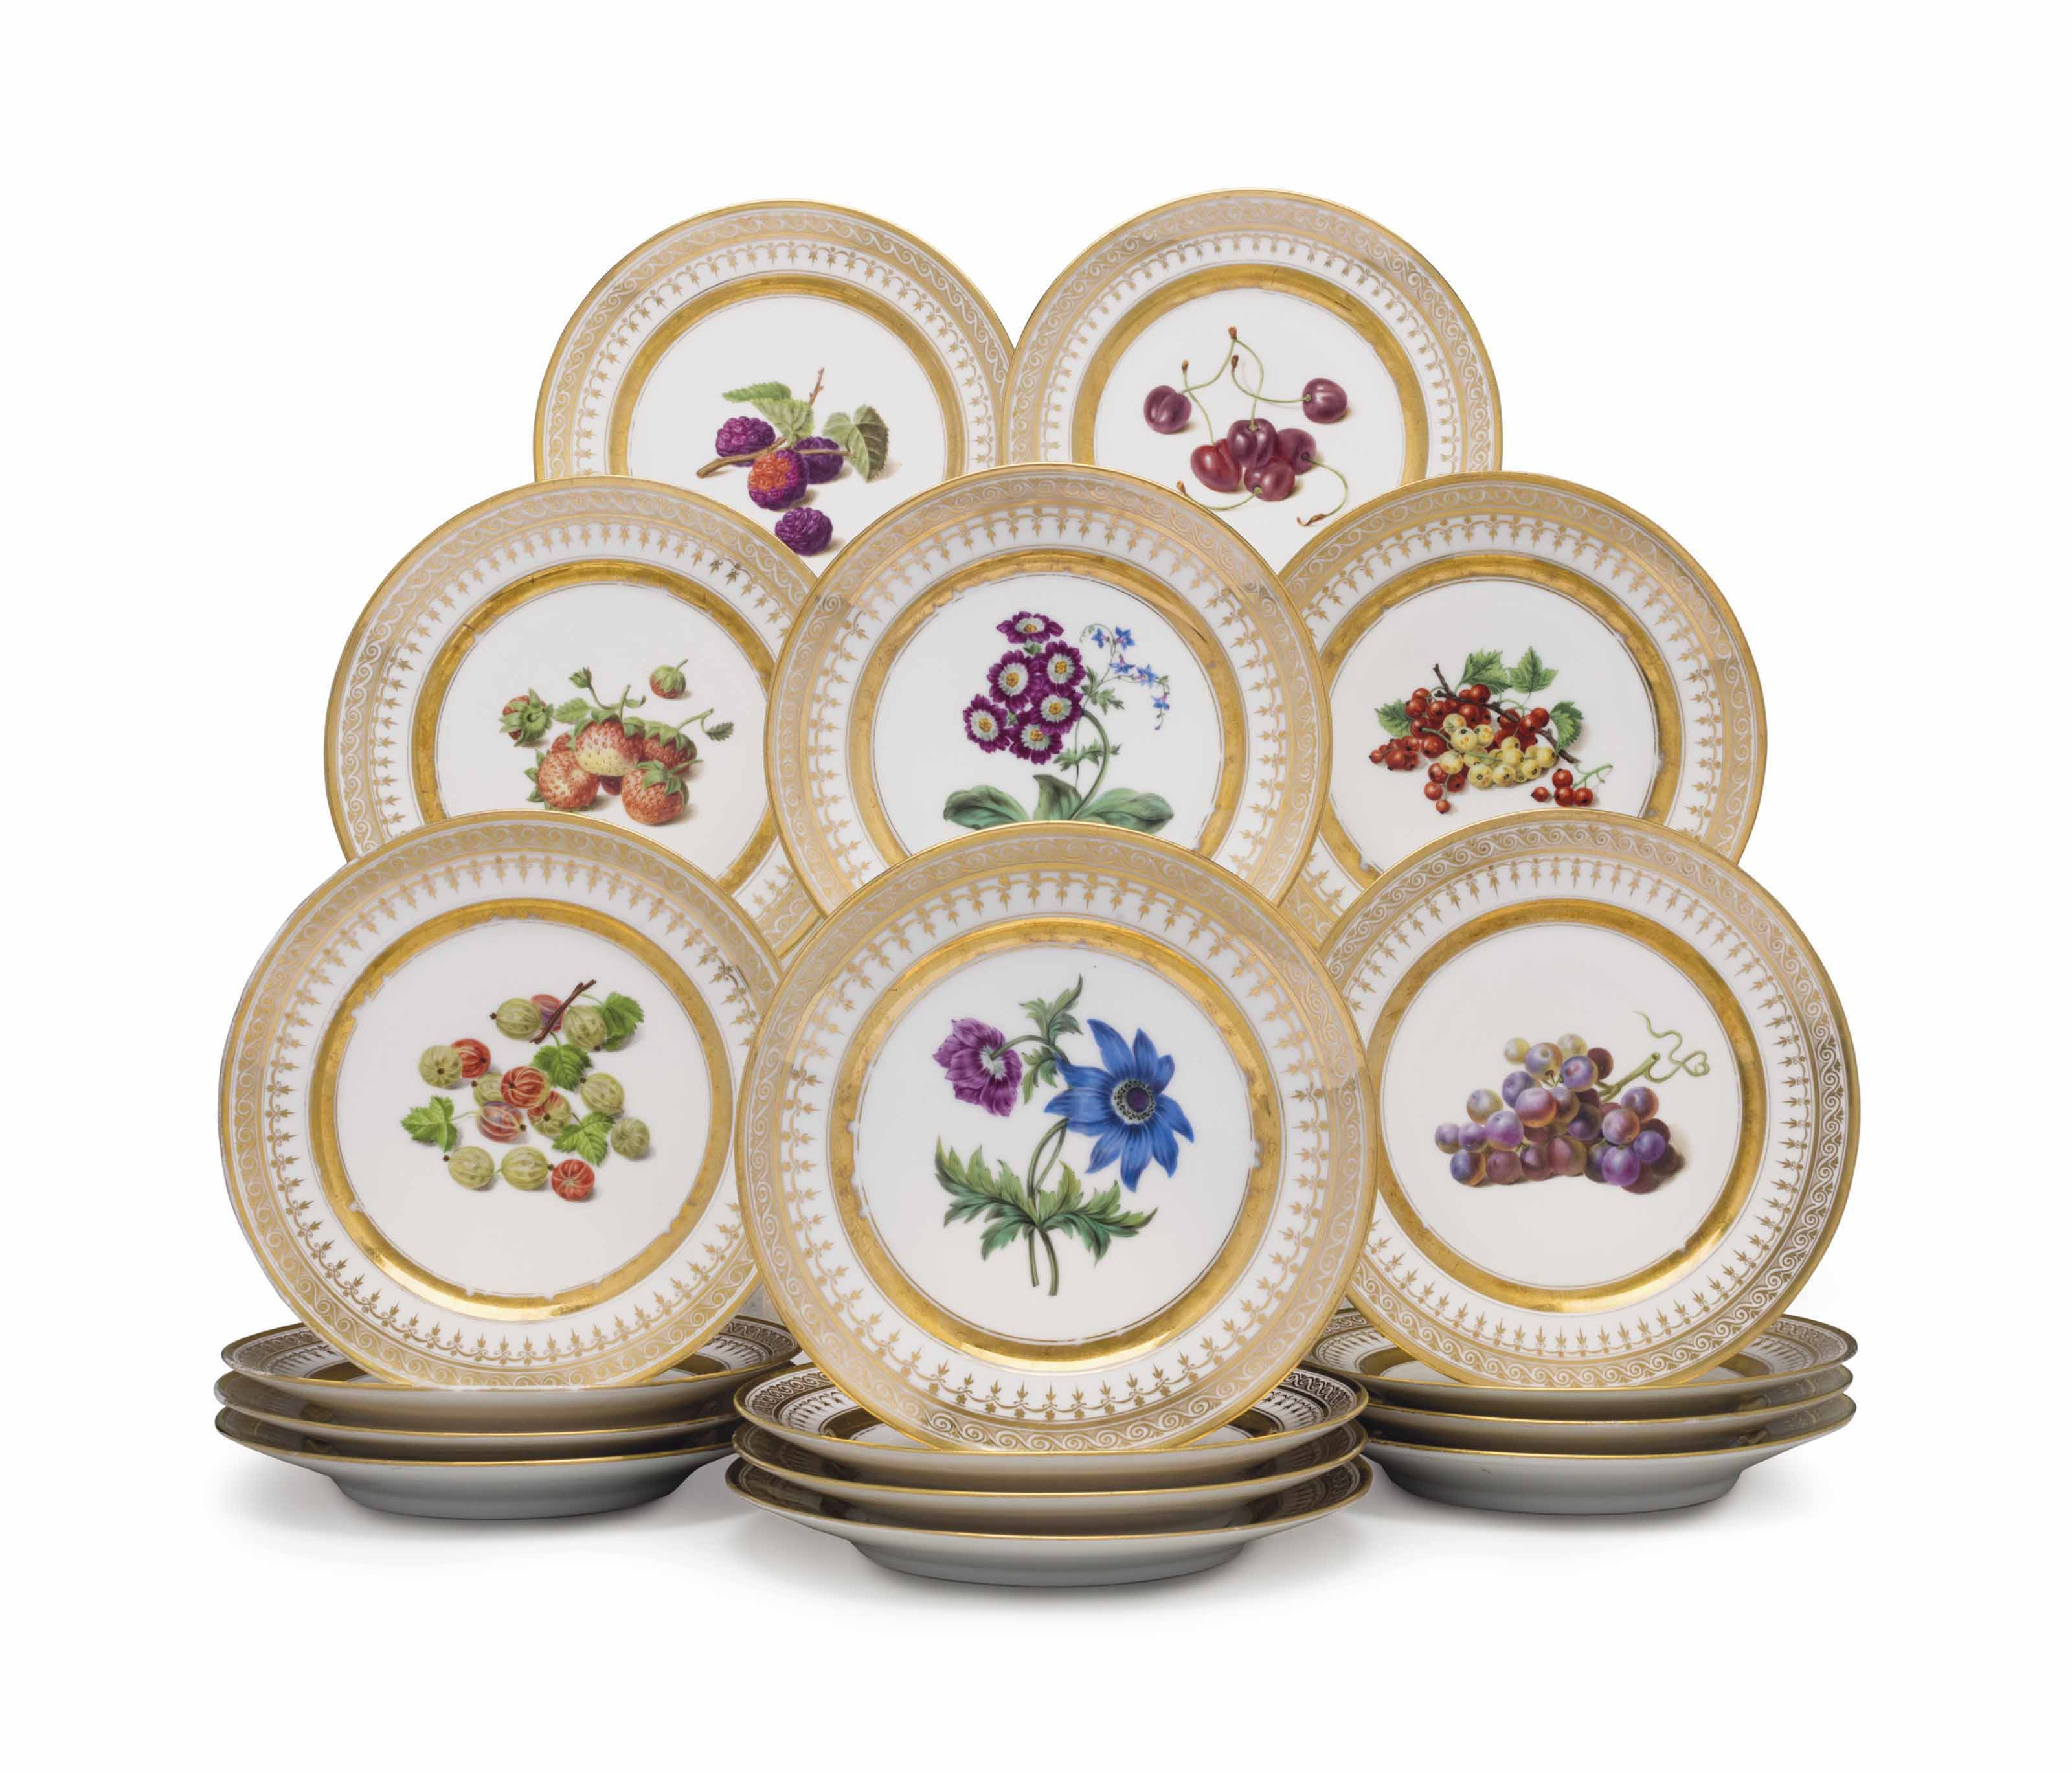 EIGHTEEN PARIS (FEUILLET) PORC  sc 1 st  Christieu0027s & EIGHTEEN PARIS (FEUILLET) PORCELAIN DESSERT PLATES | CIRCA 1820 ...